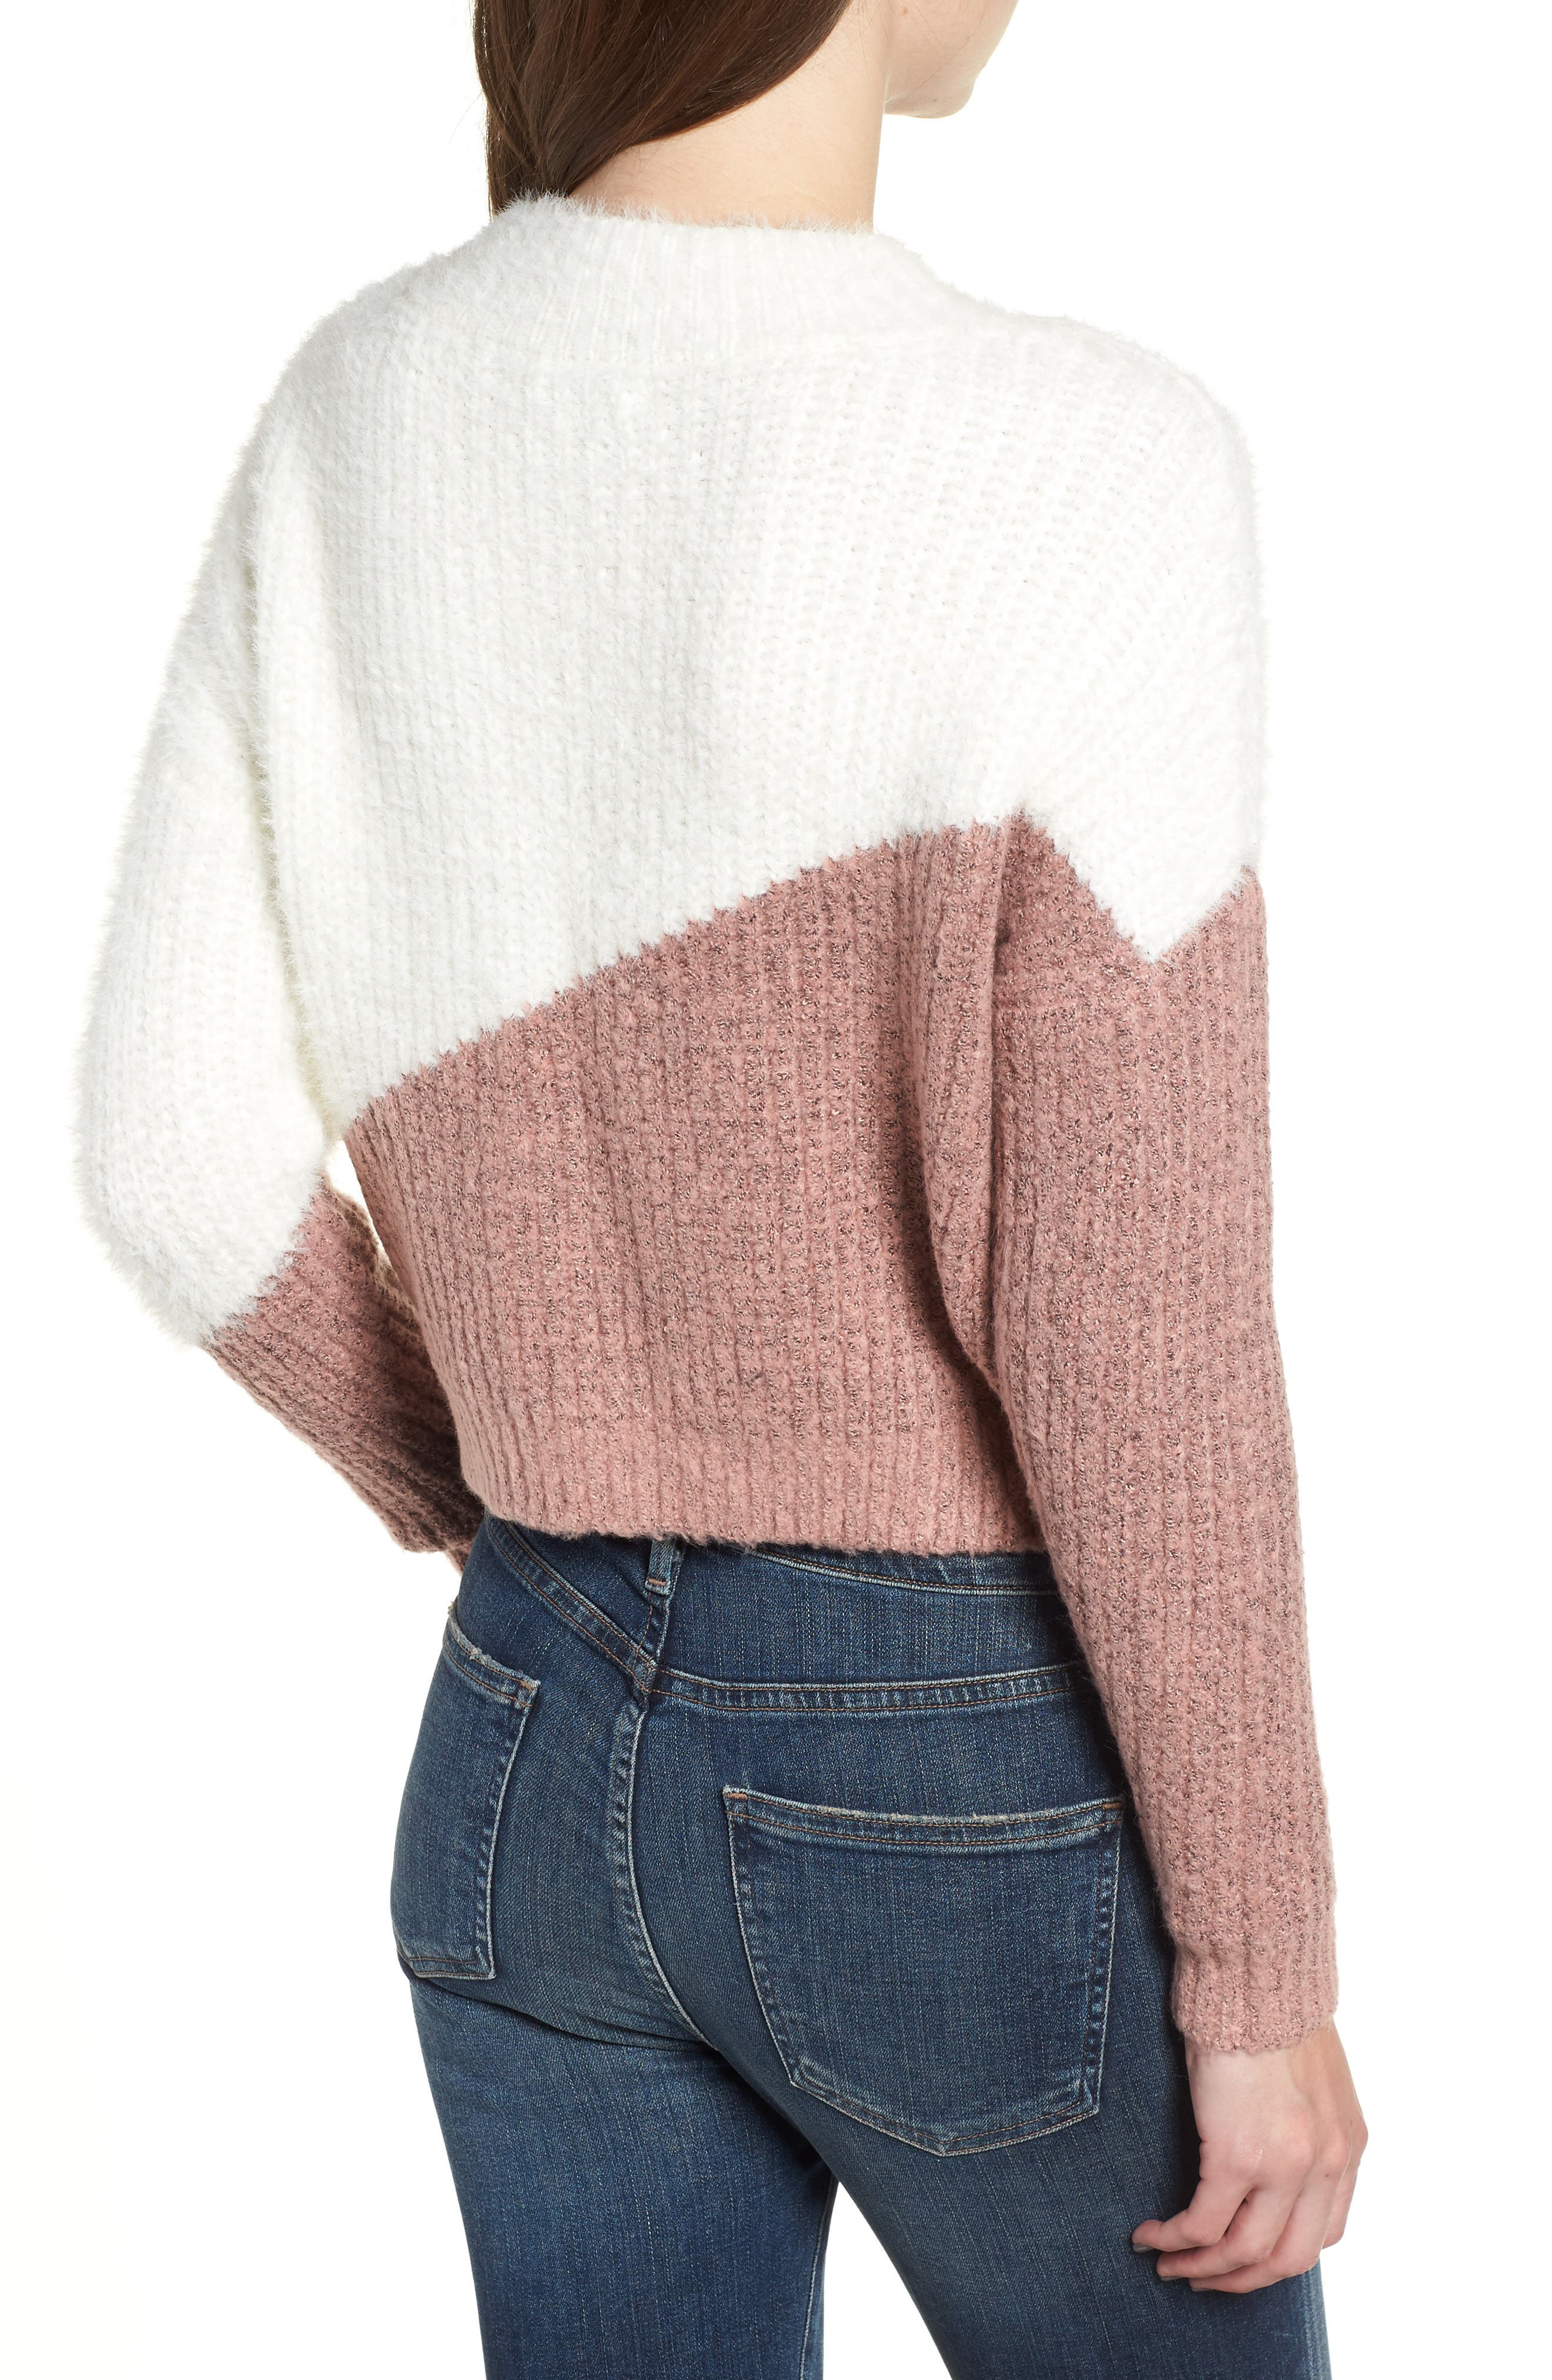 BISHOP + YOUNG,                             Diagonal Colorblock Sweater,                             Alternate thumbnail 2, color,                             650